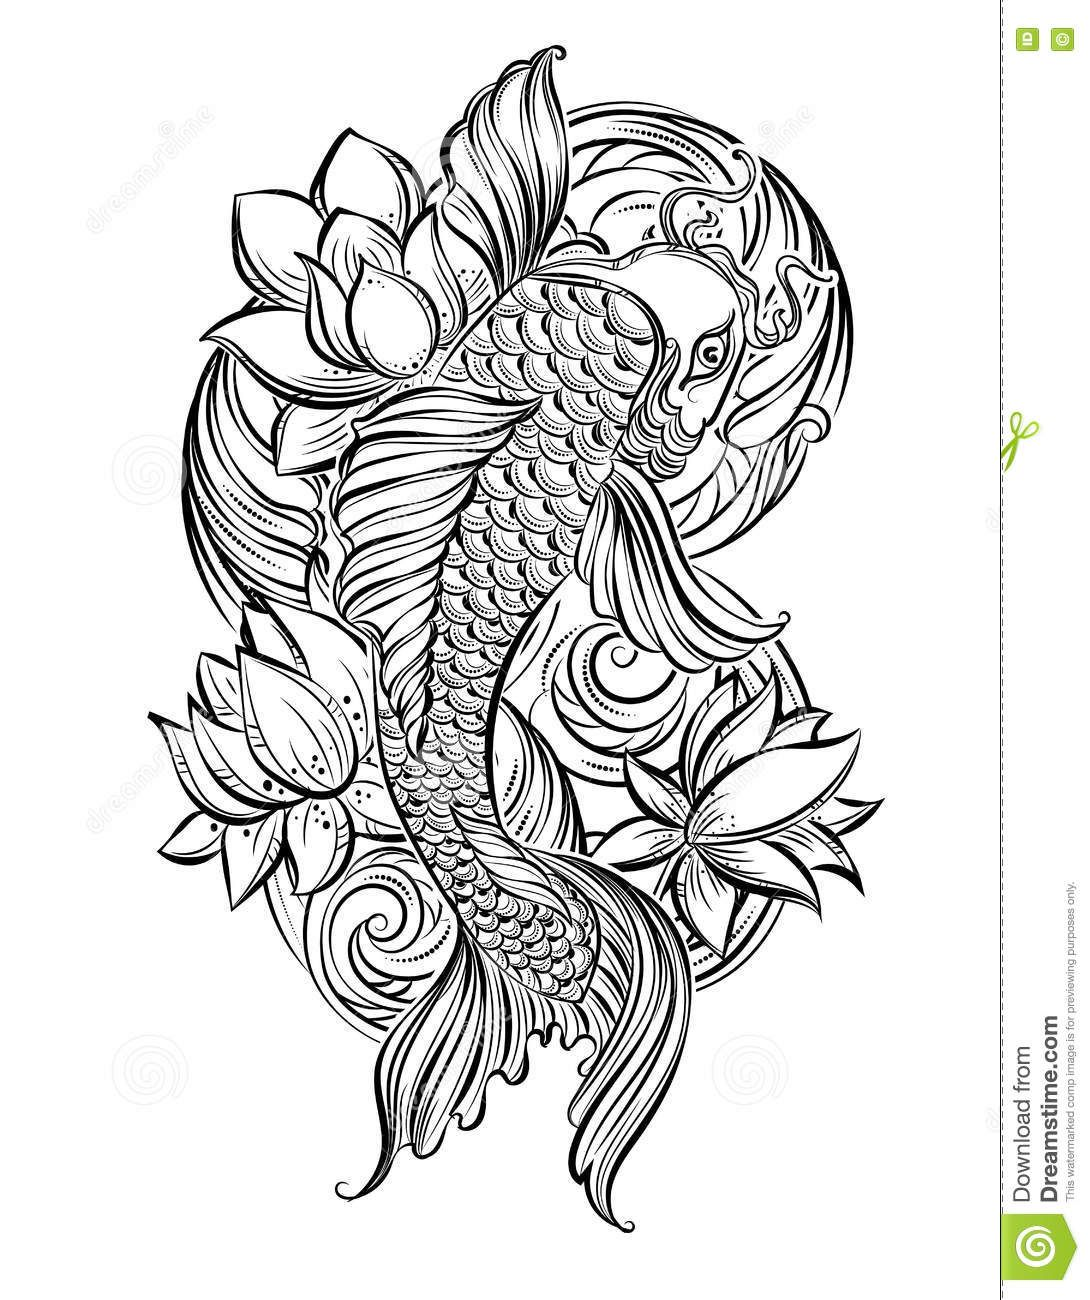 Koi fish tats pinterest tatting lotus flower tattoo designs hand drawn asian spiritual symbols koi carp with lotus and waves it can be used for tattoo and embossing or coloring mightylinksfo